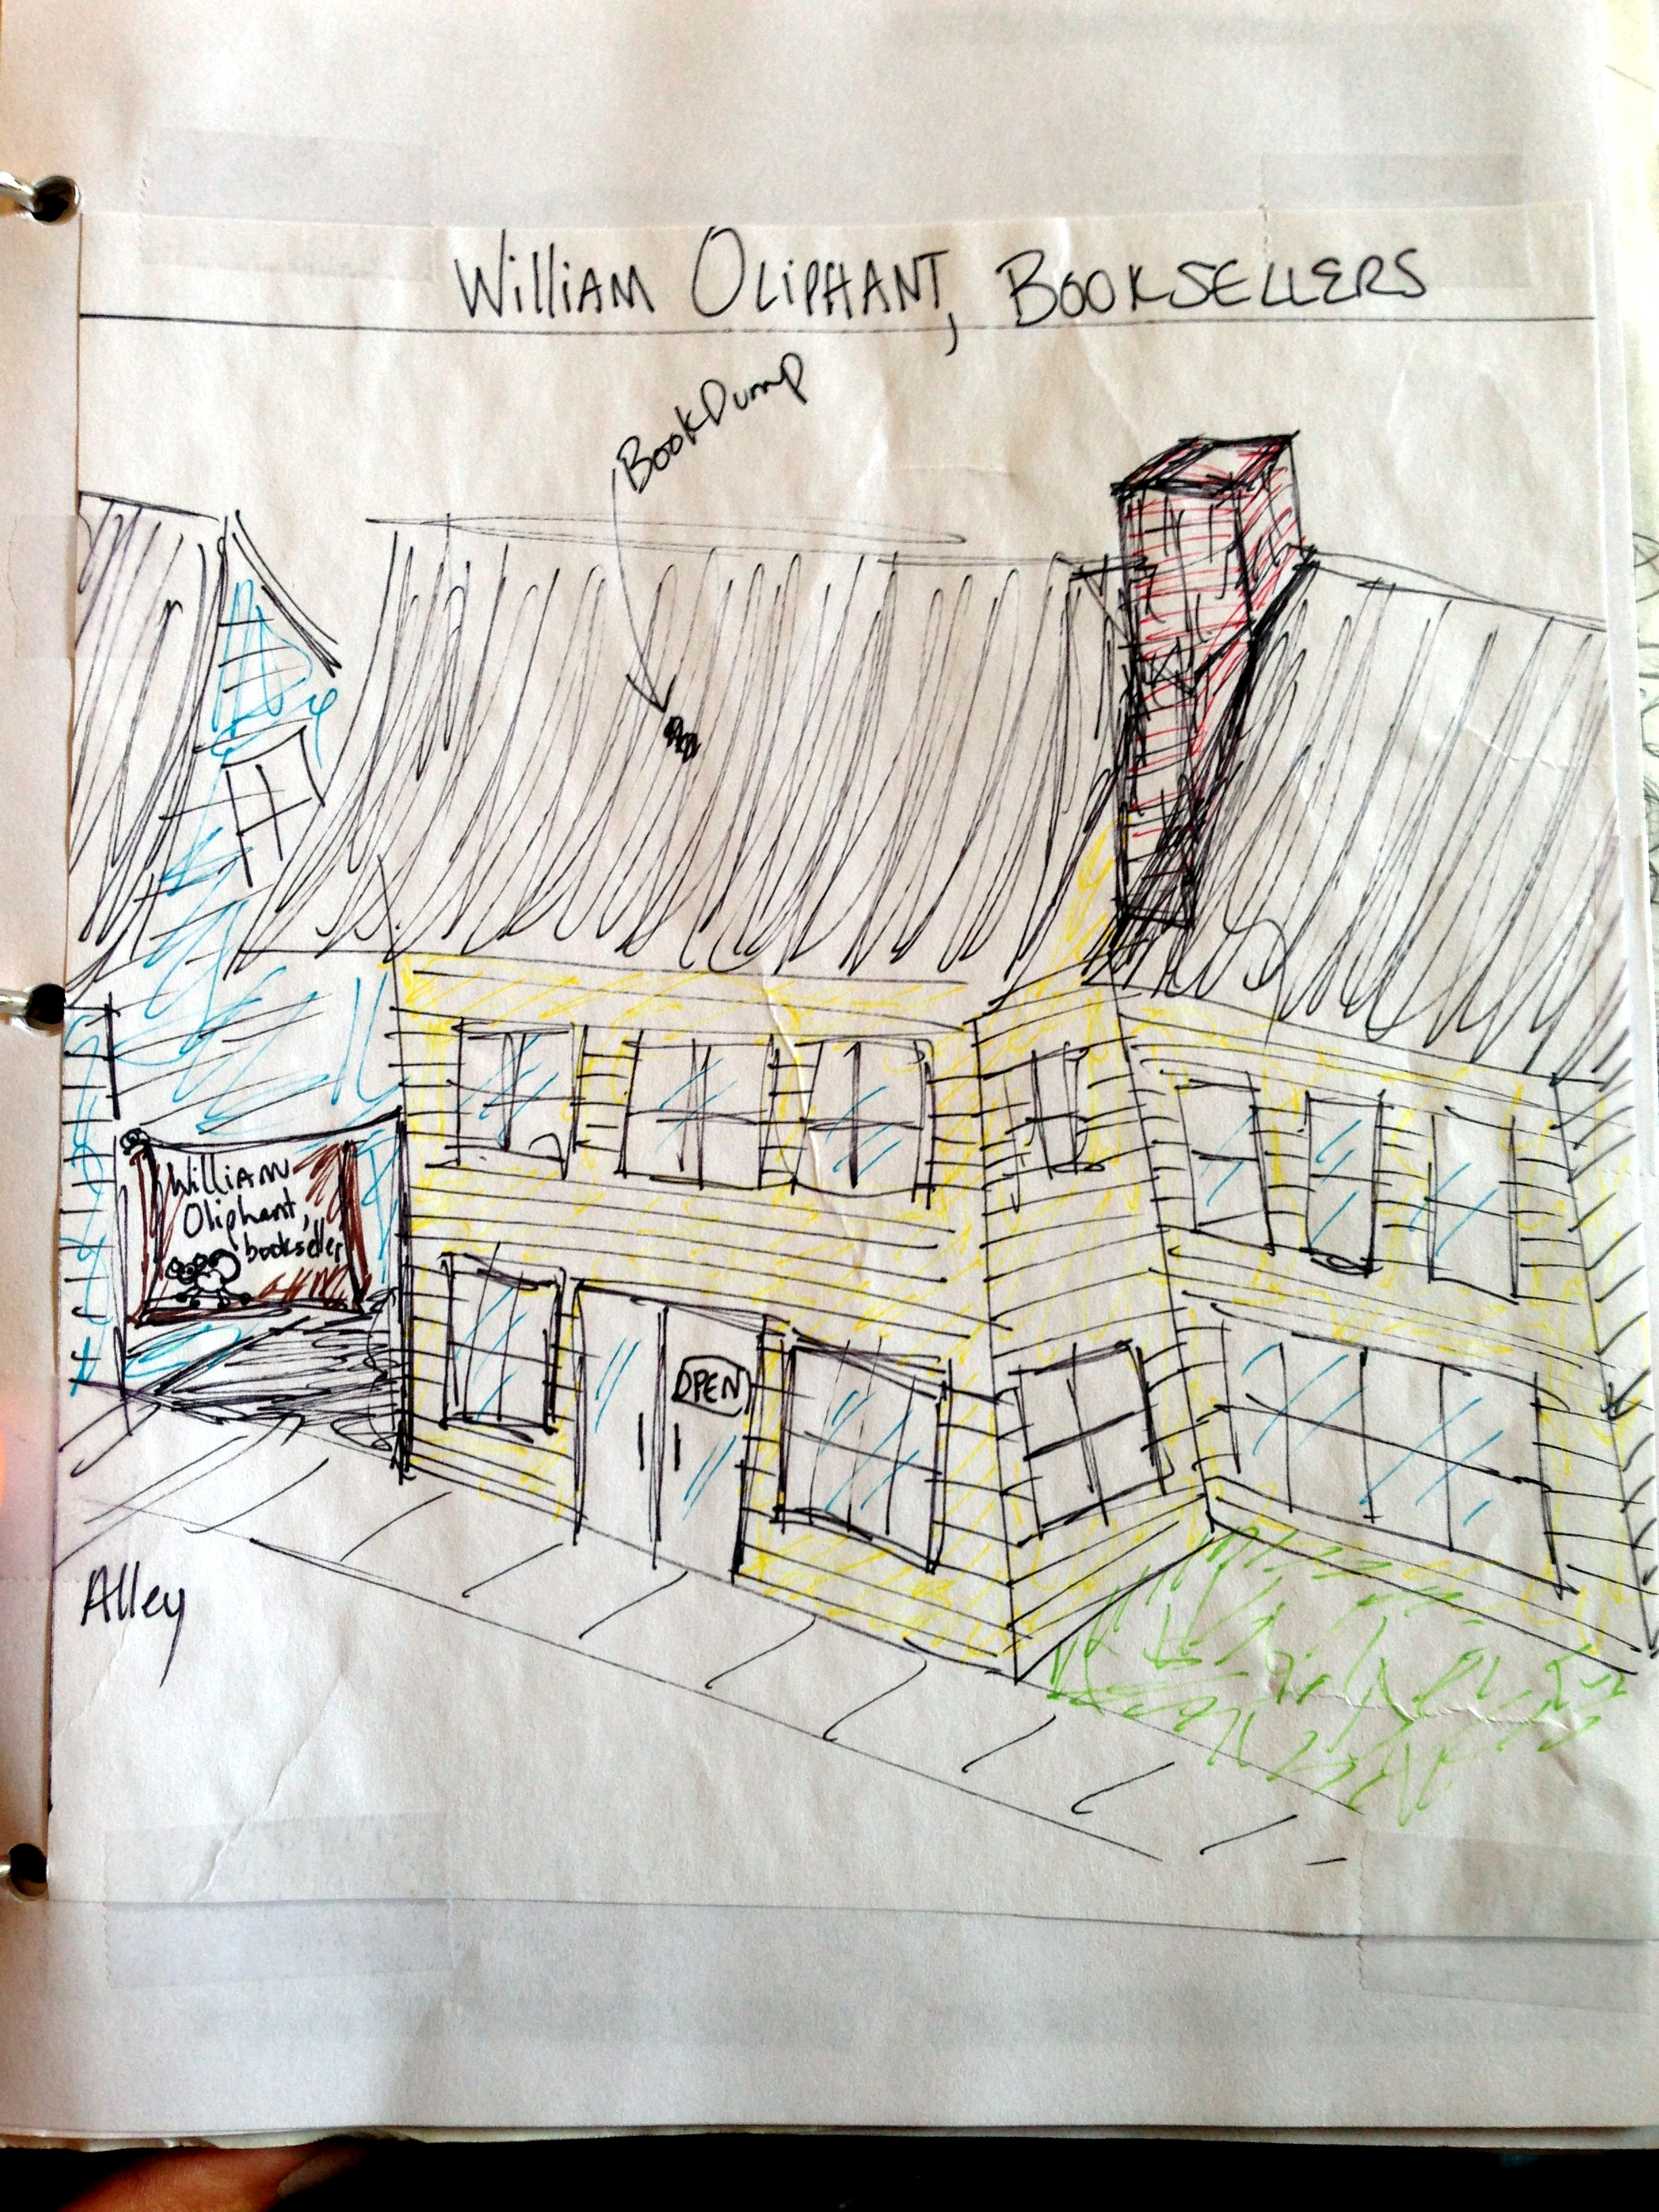 william-oliphant-booksellers-building